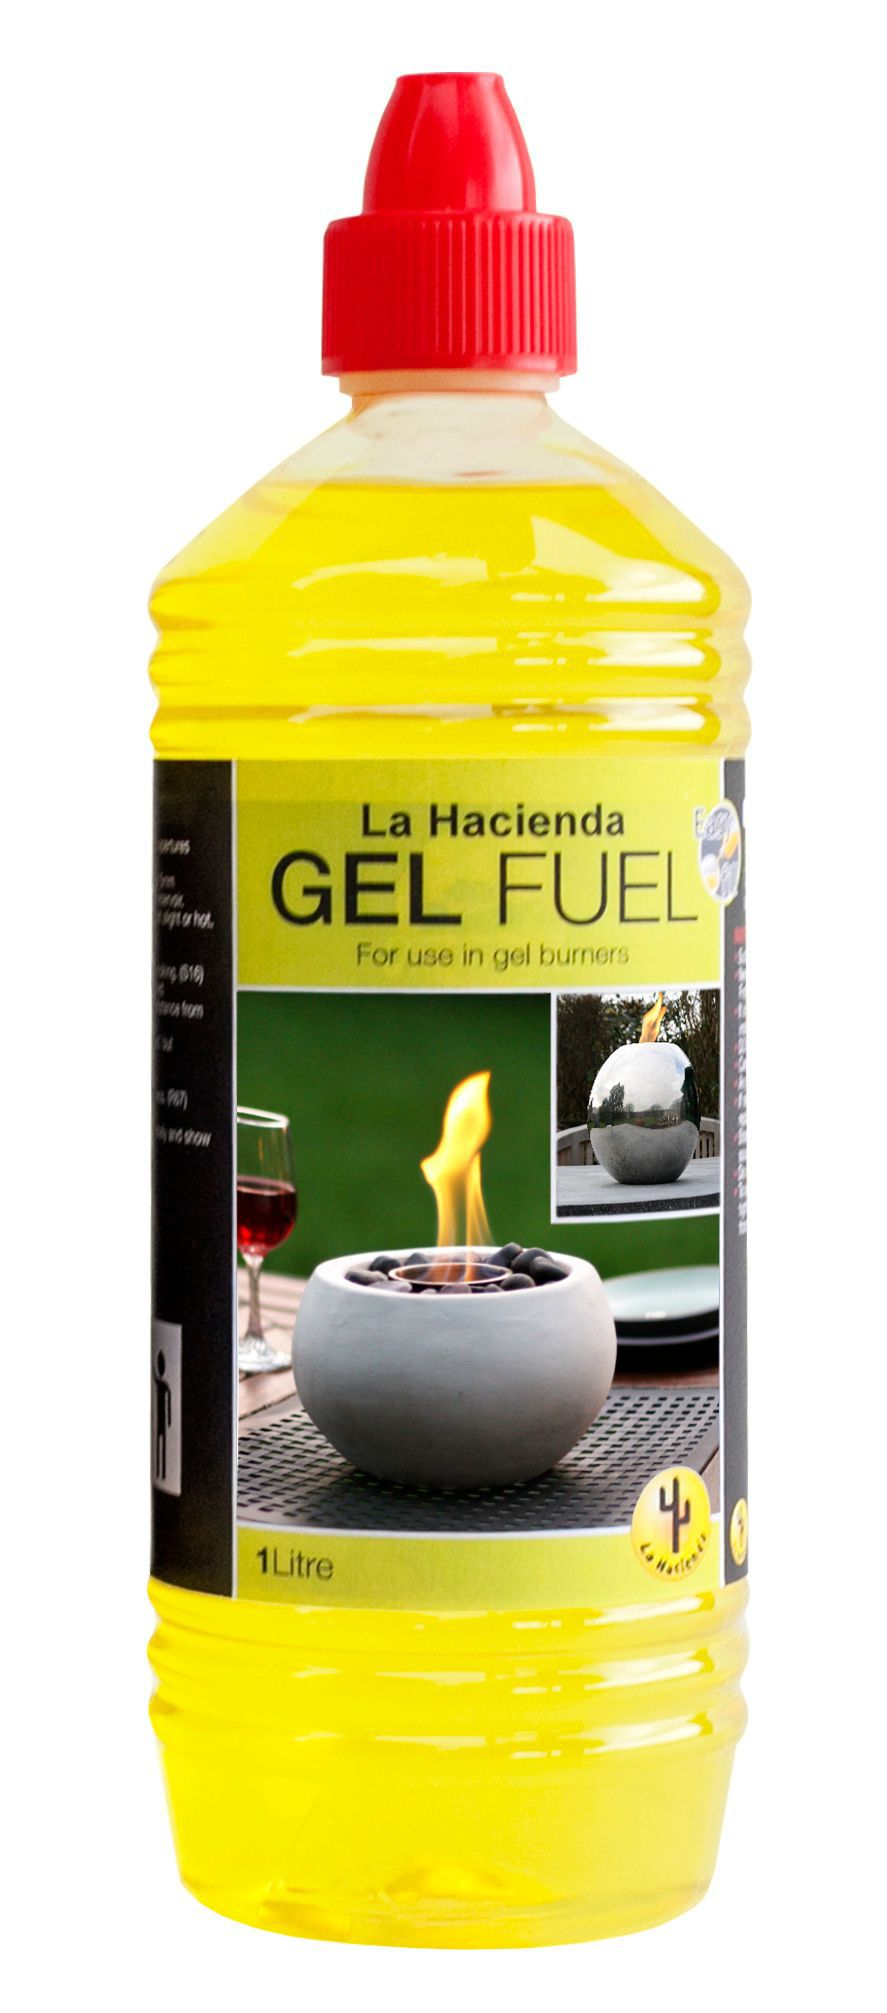 La Hacienda Gel Fuel 1l Departments Diy At B Amp Q